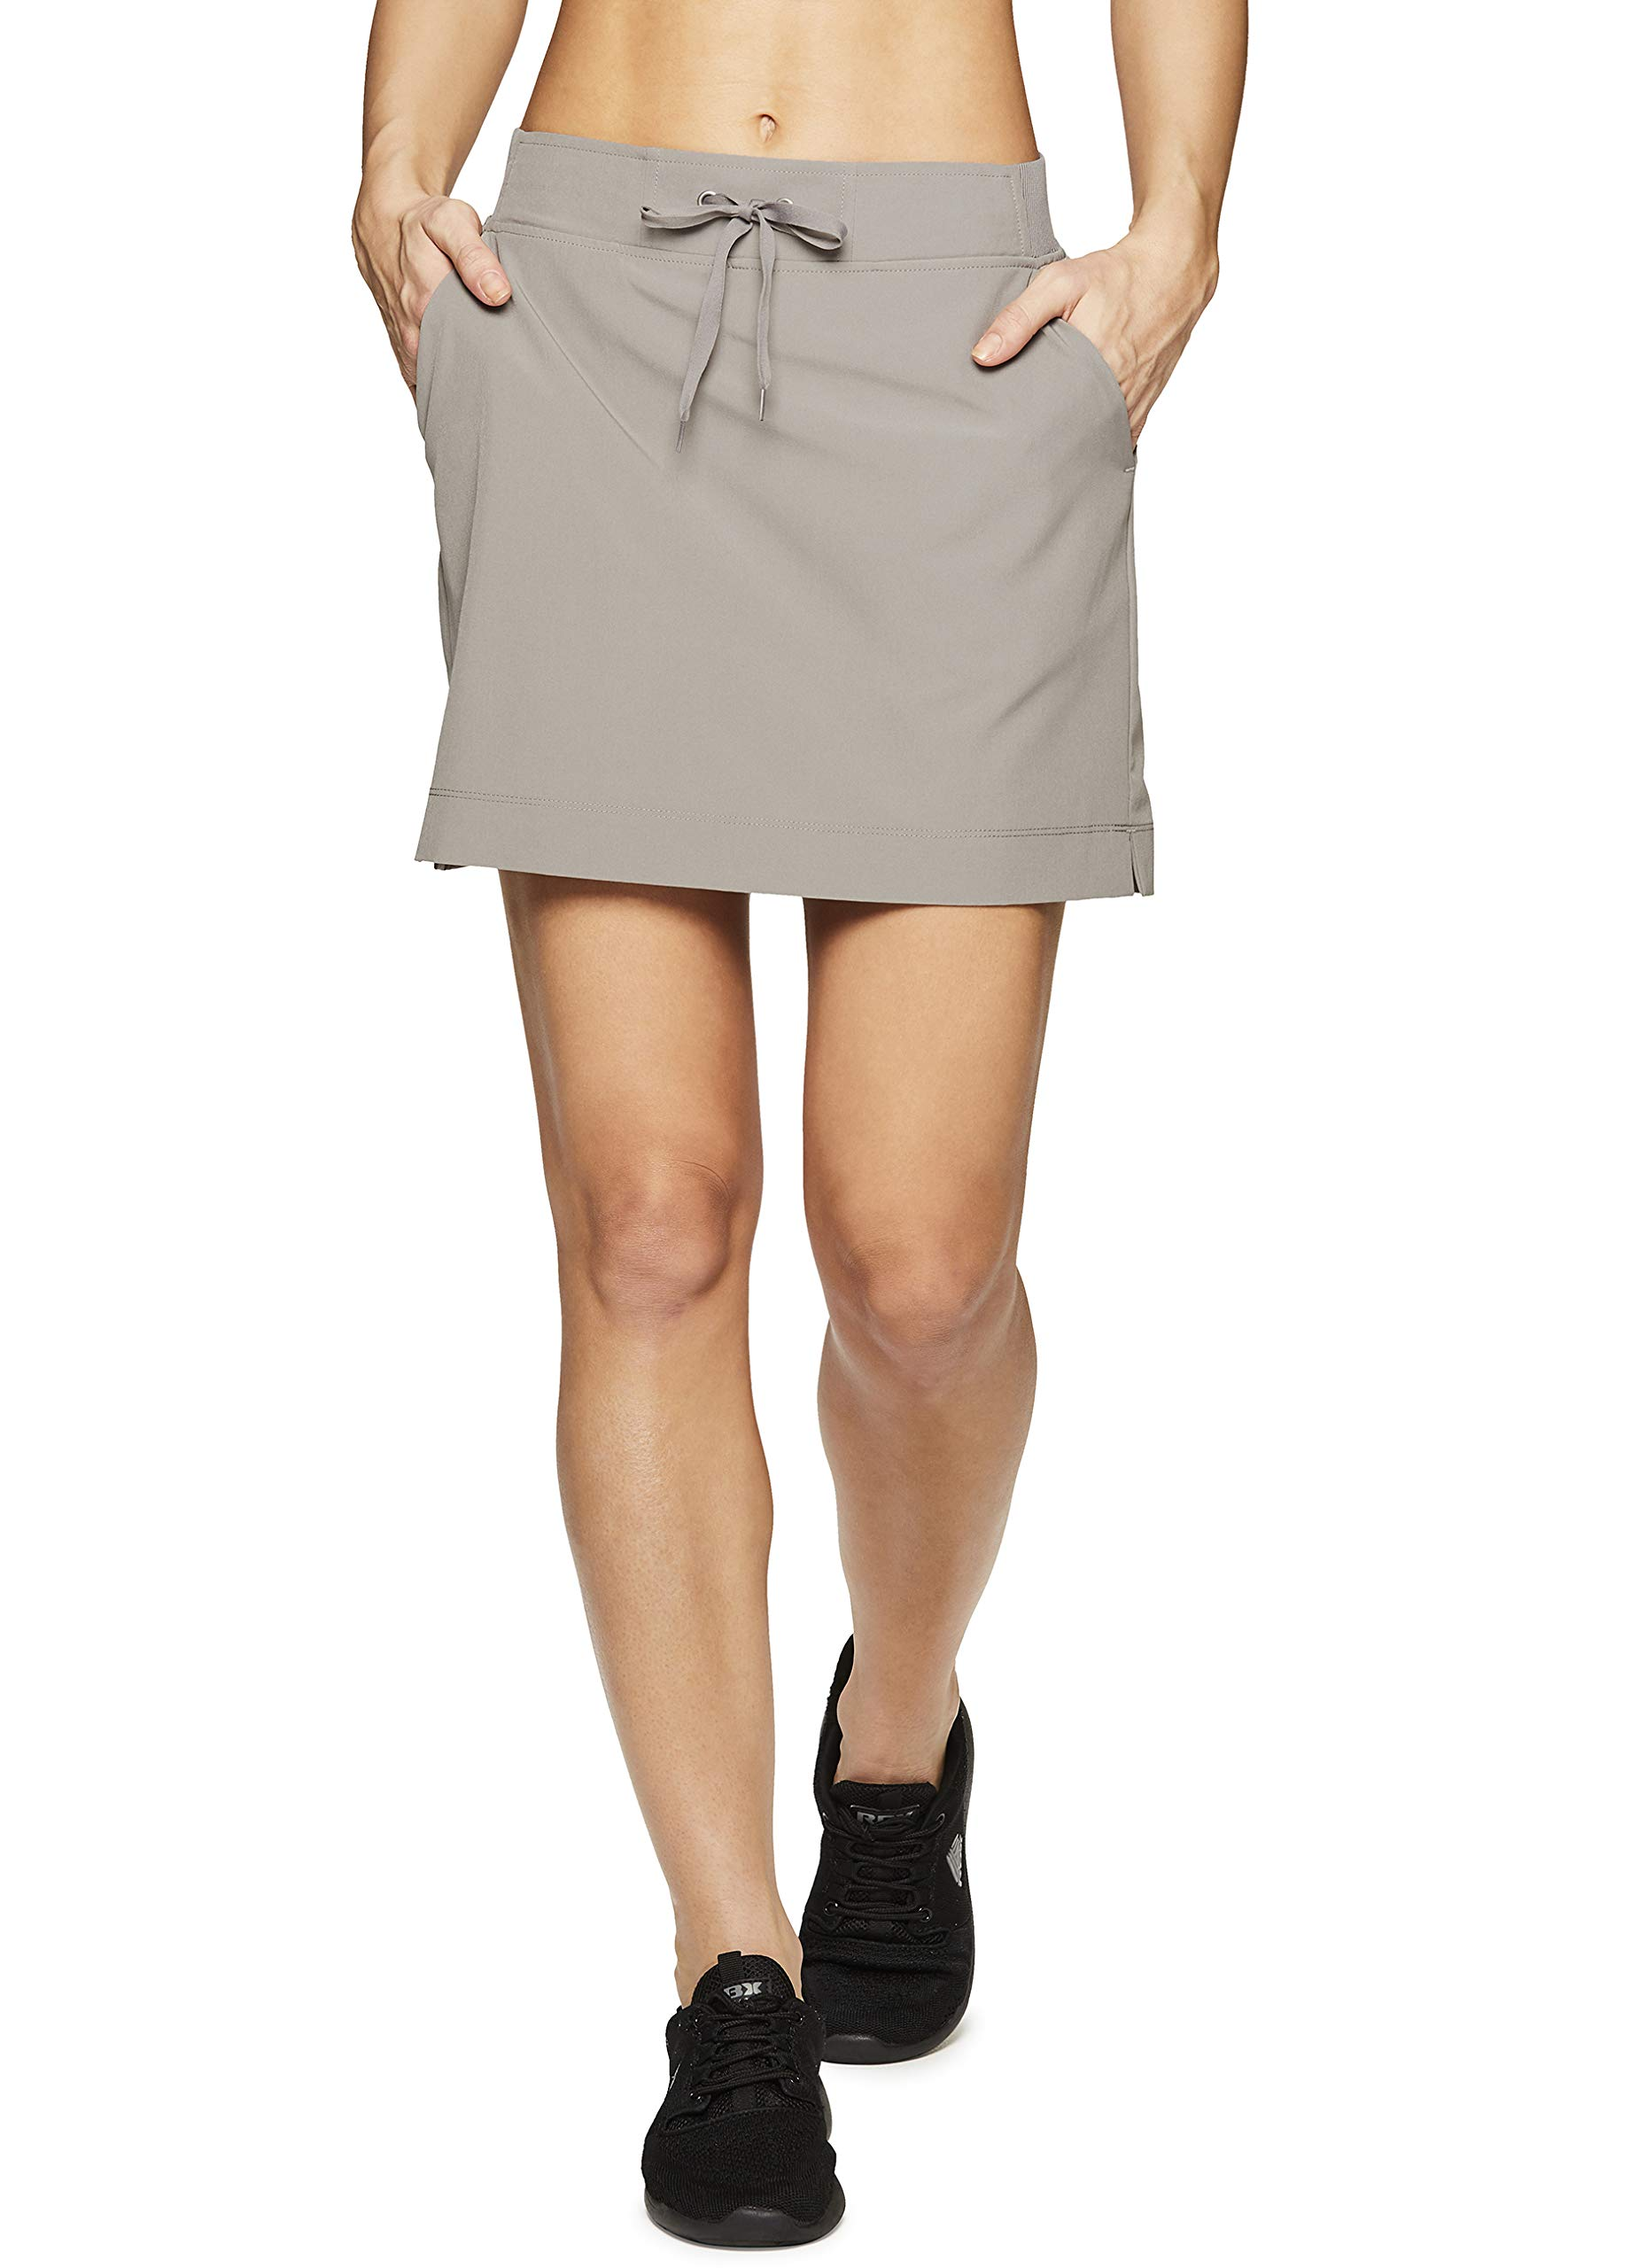 RBX Active Women's Golf/Tennis Athletic Skort with Bike Shorts S19 Taupe XL by RBX